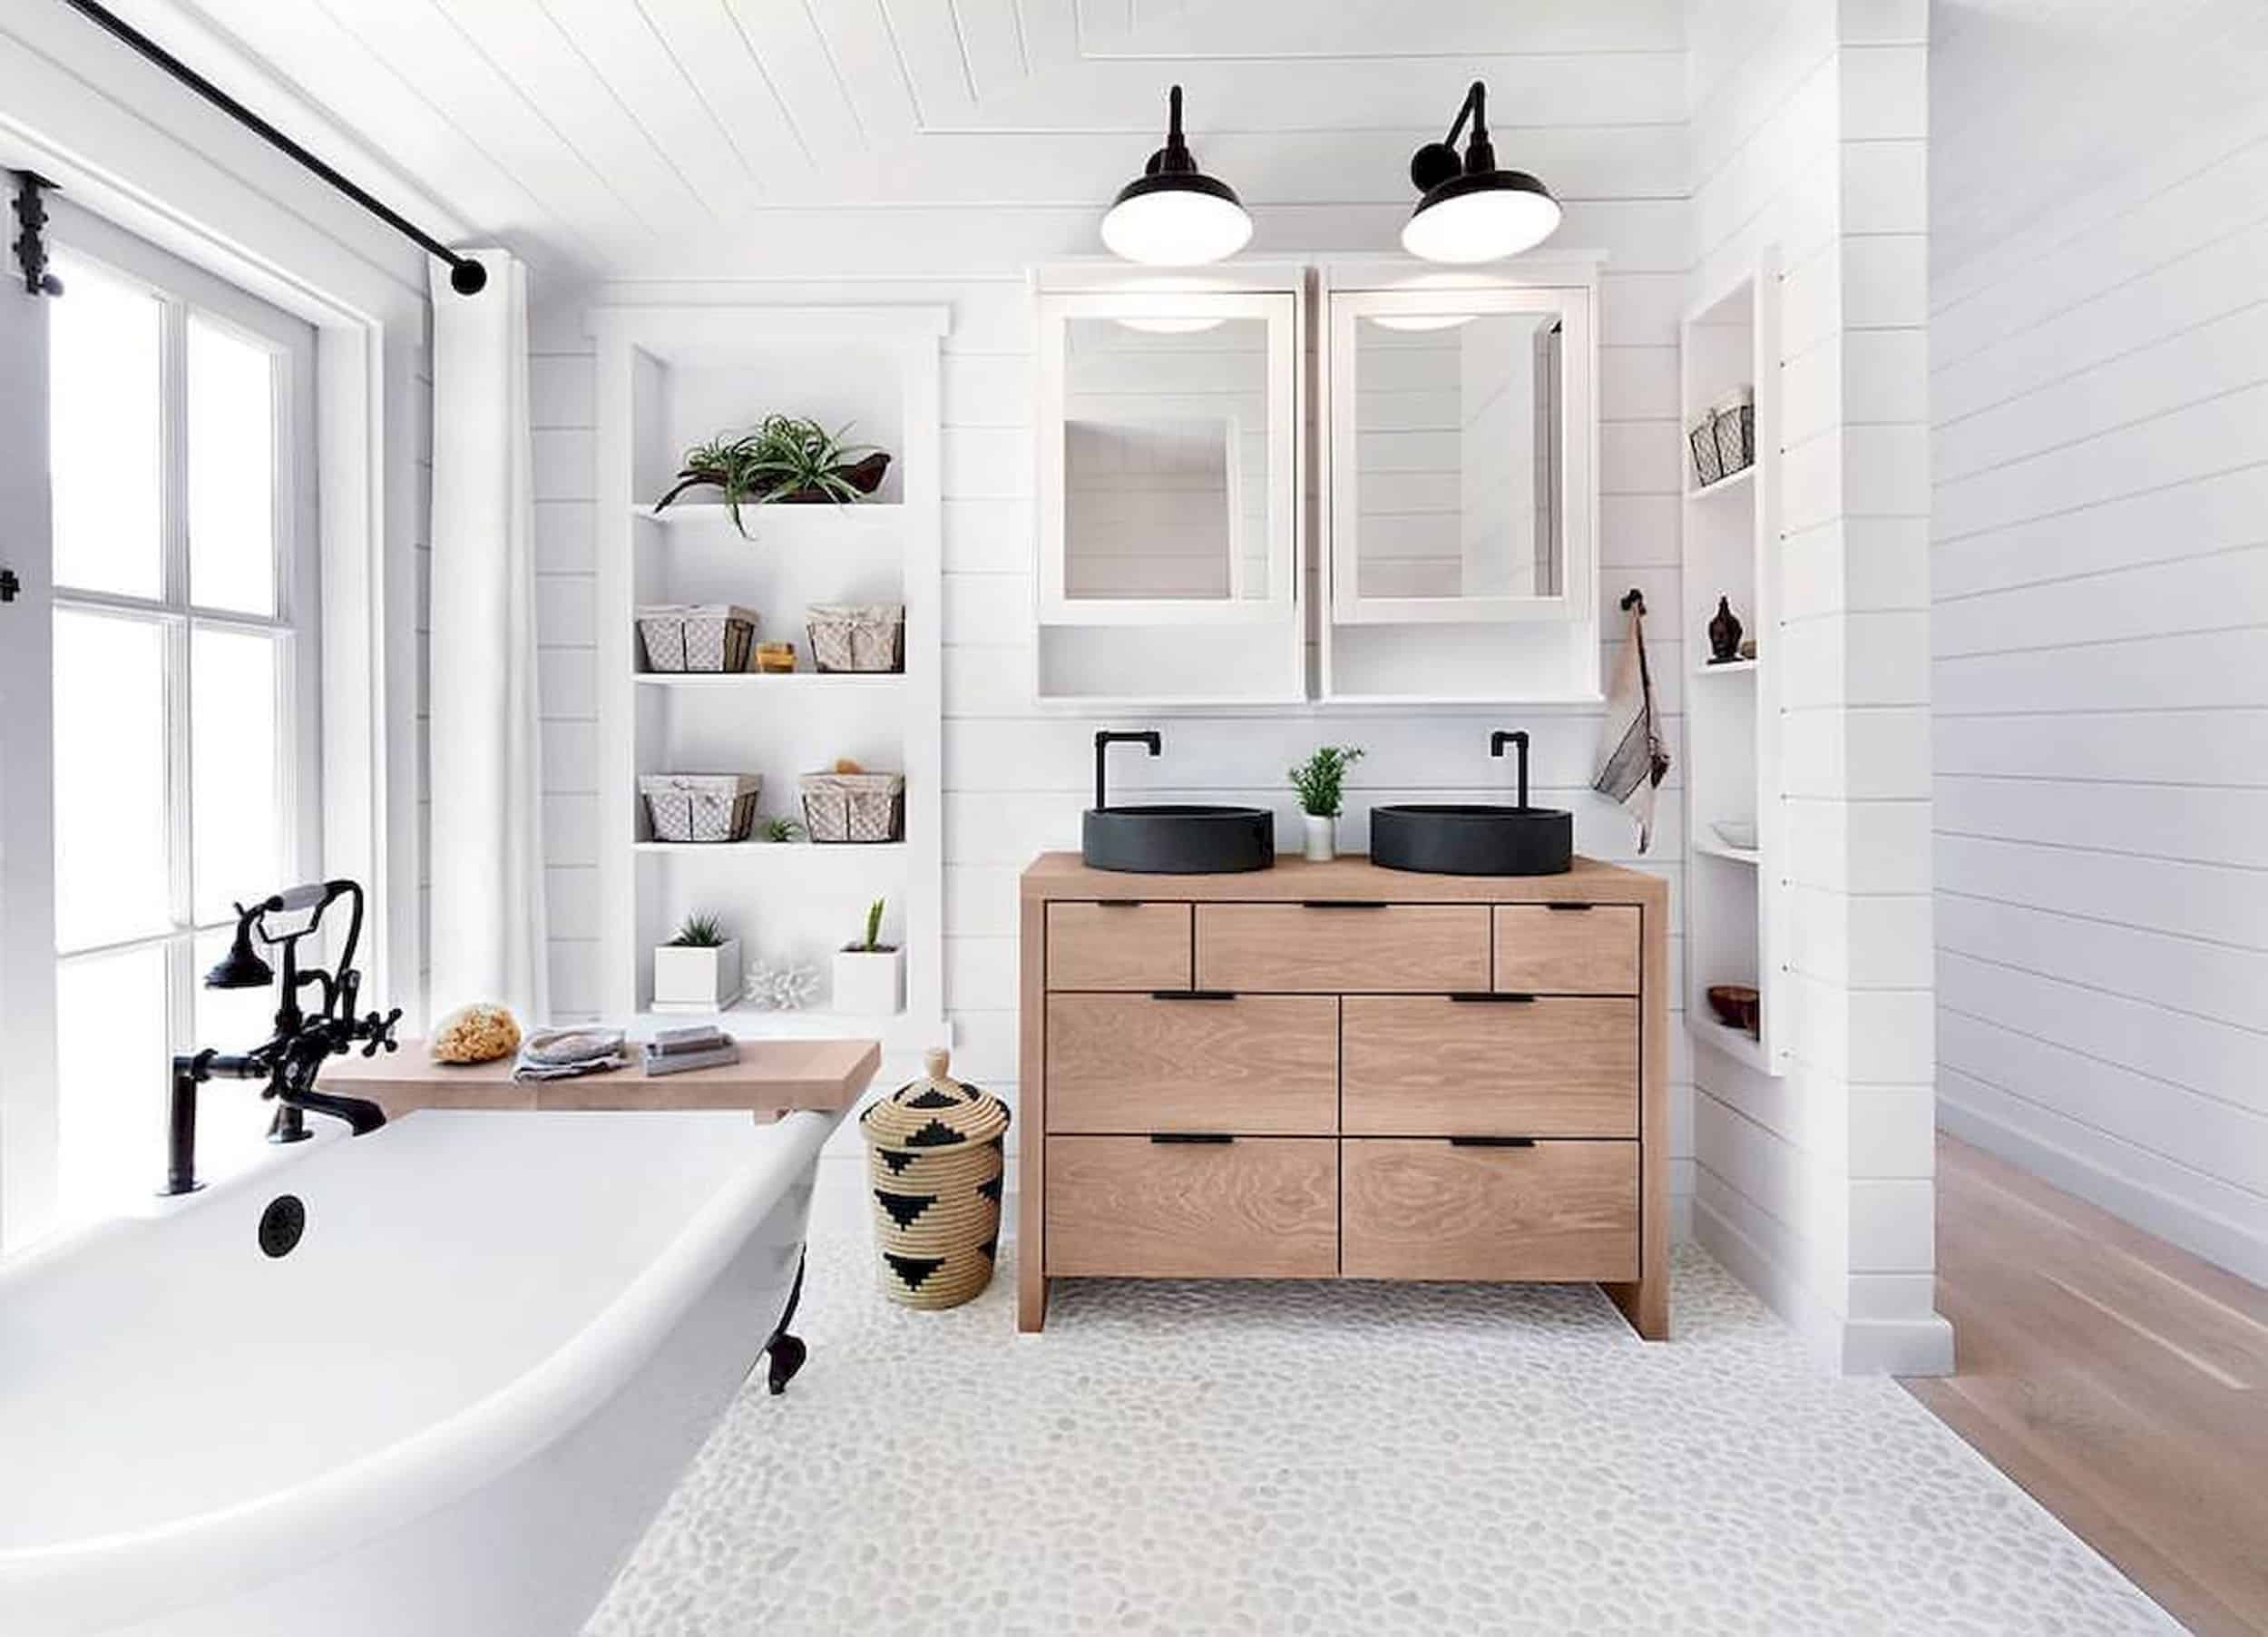 Emily Henderson Mountain Fixer Upper Rethink The Pebble Bathrooms Clawfoot Bathtub